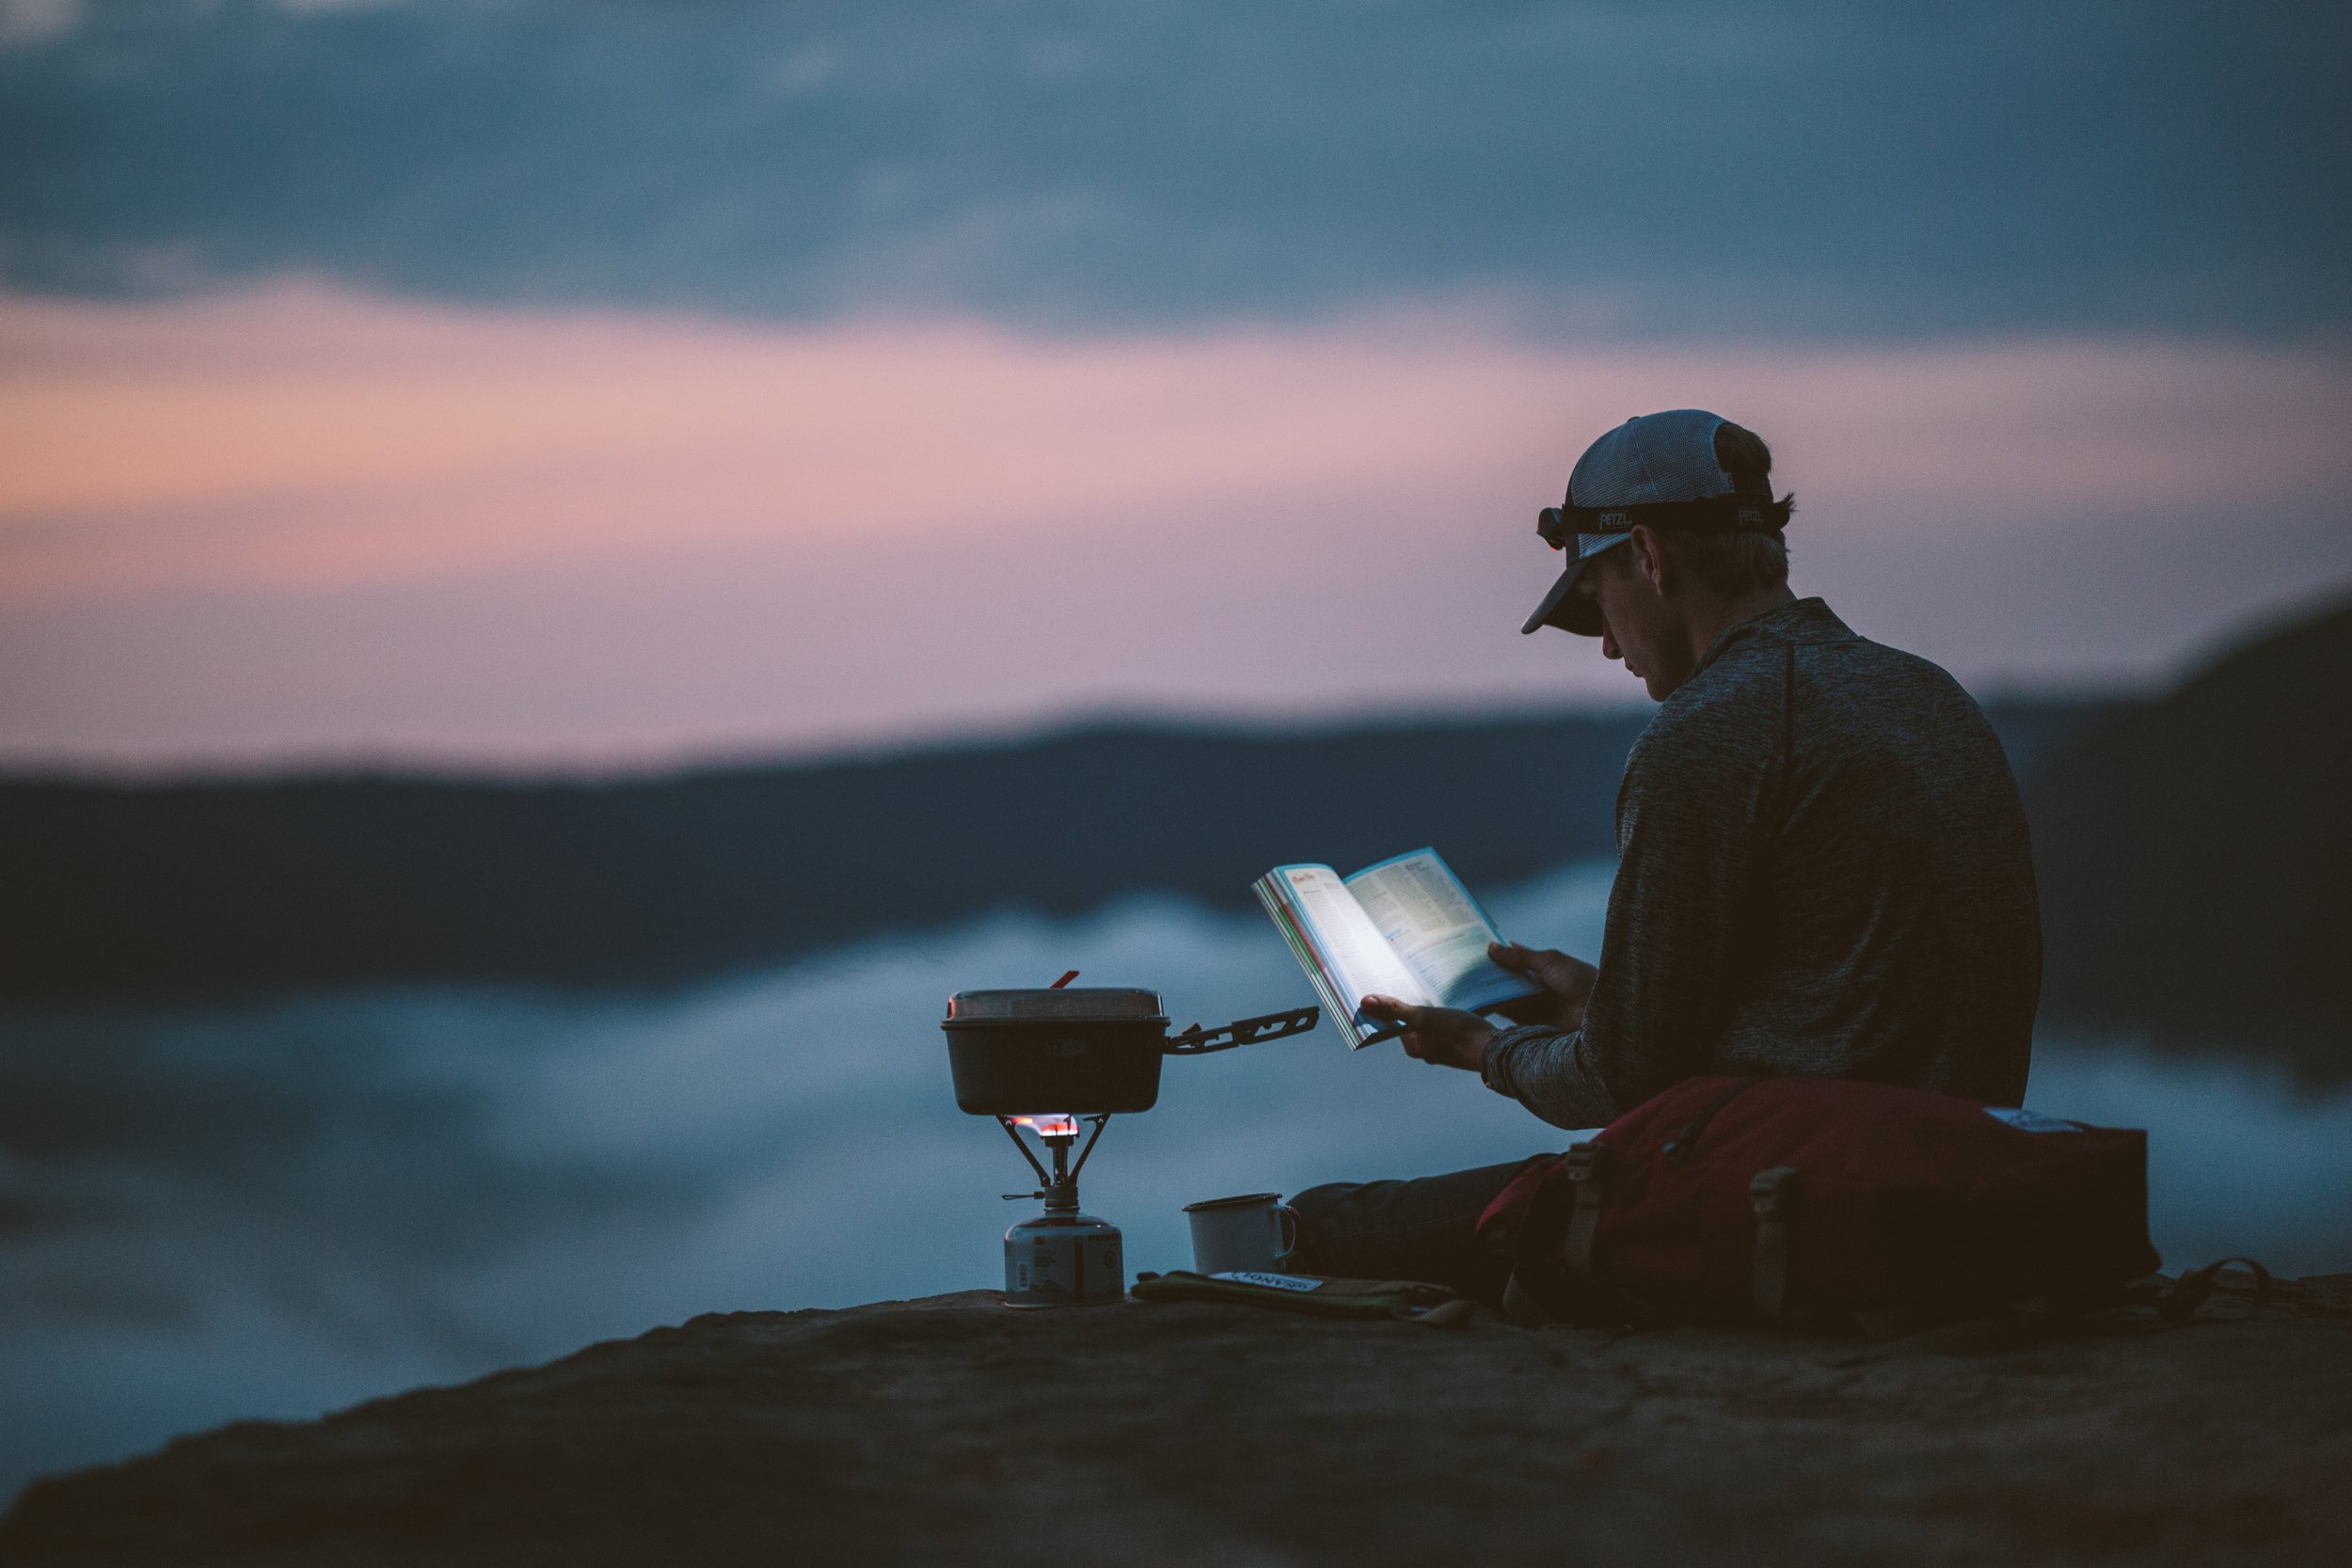 man reading book in nature with a headlamp for light